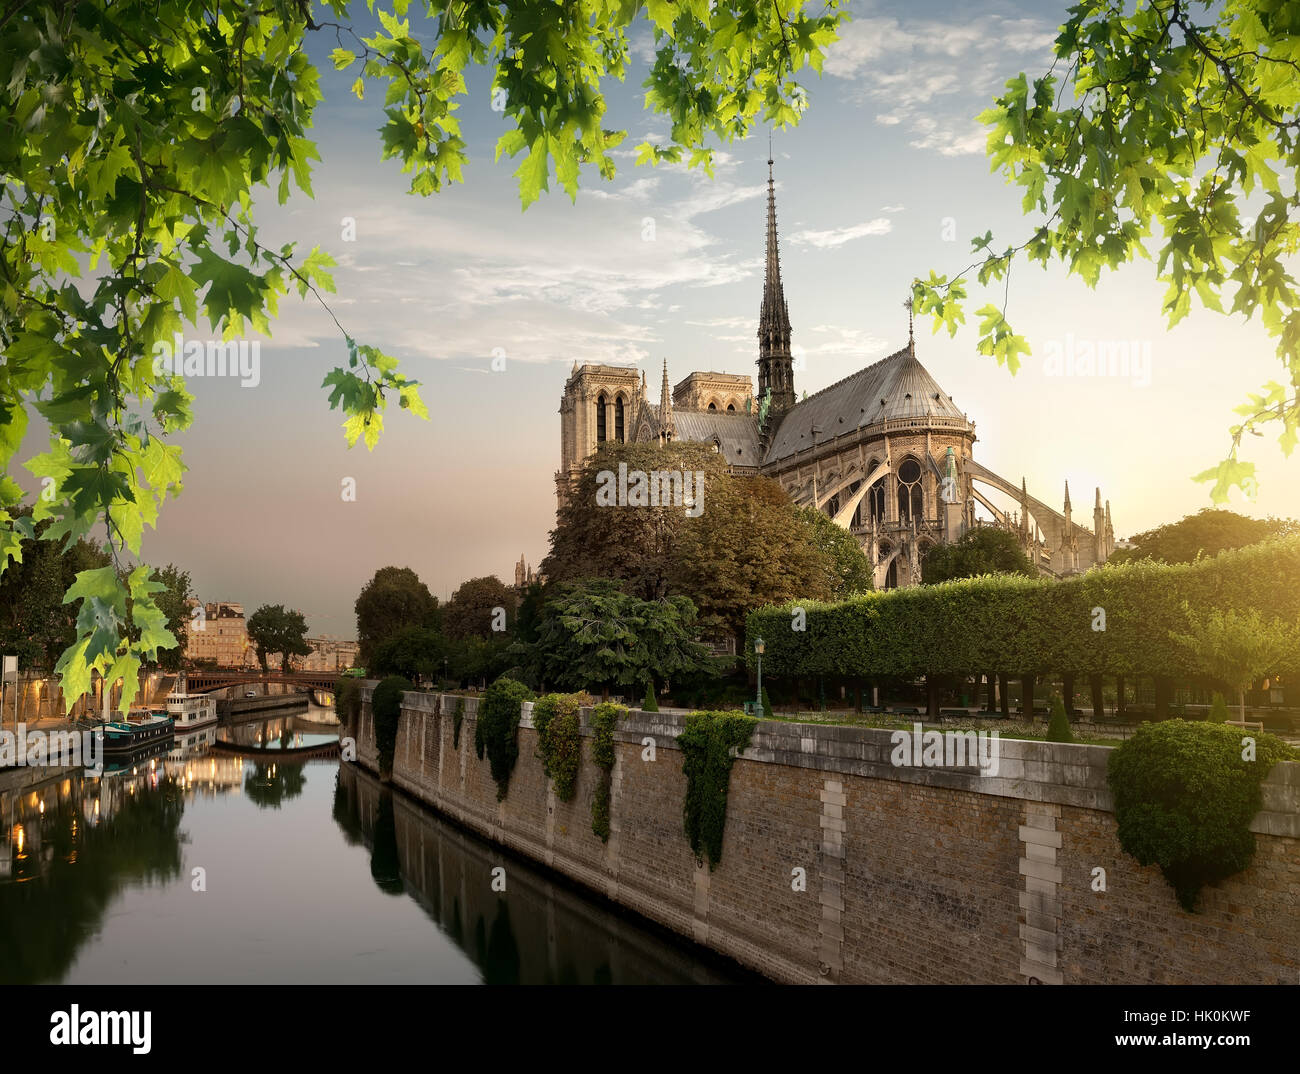 Notre Dame and park on river Seine in Paris, France - Stock Image